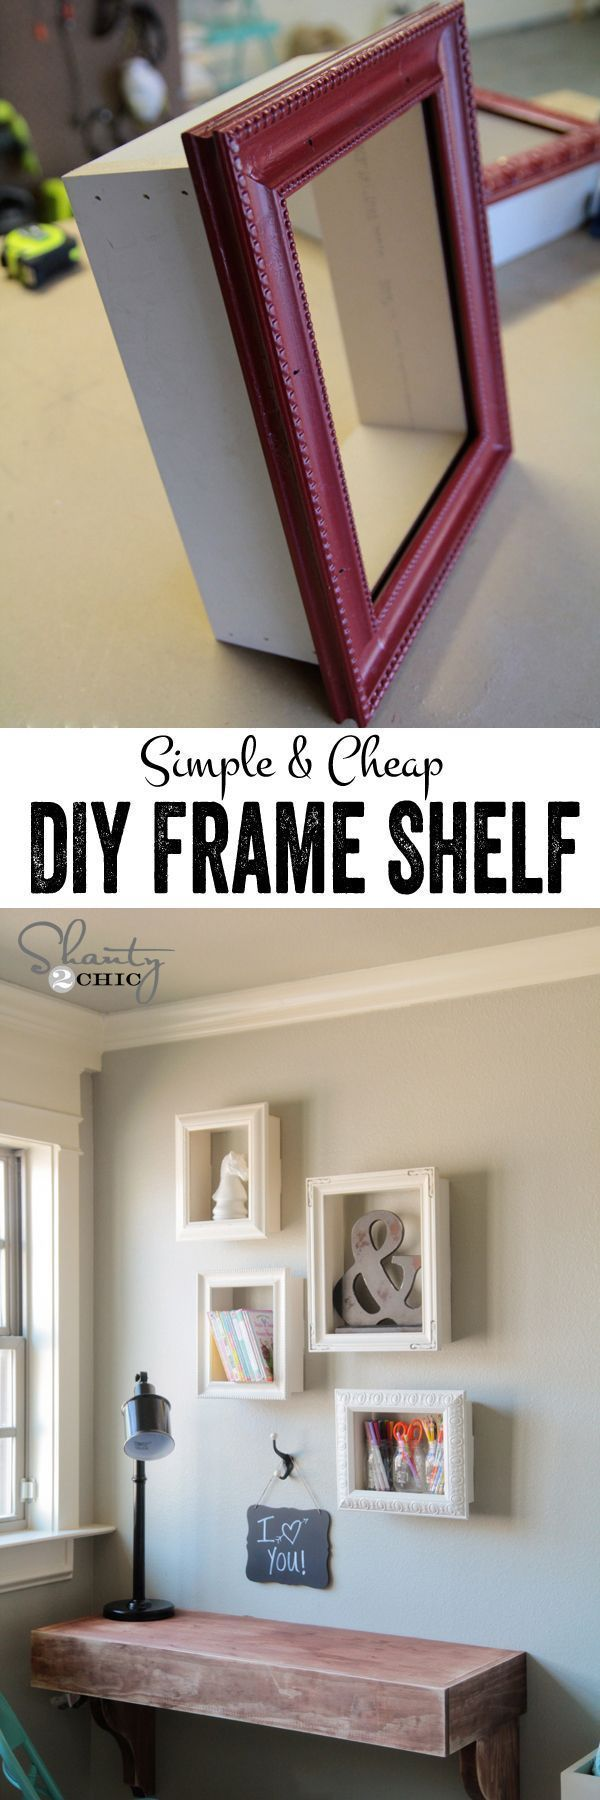 Incorporate Trends into Thrift Store Frames  Diy Home Decor. 25  best Easy Home Decor ideas on Pinterest   Cheap bedroom decor